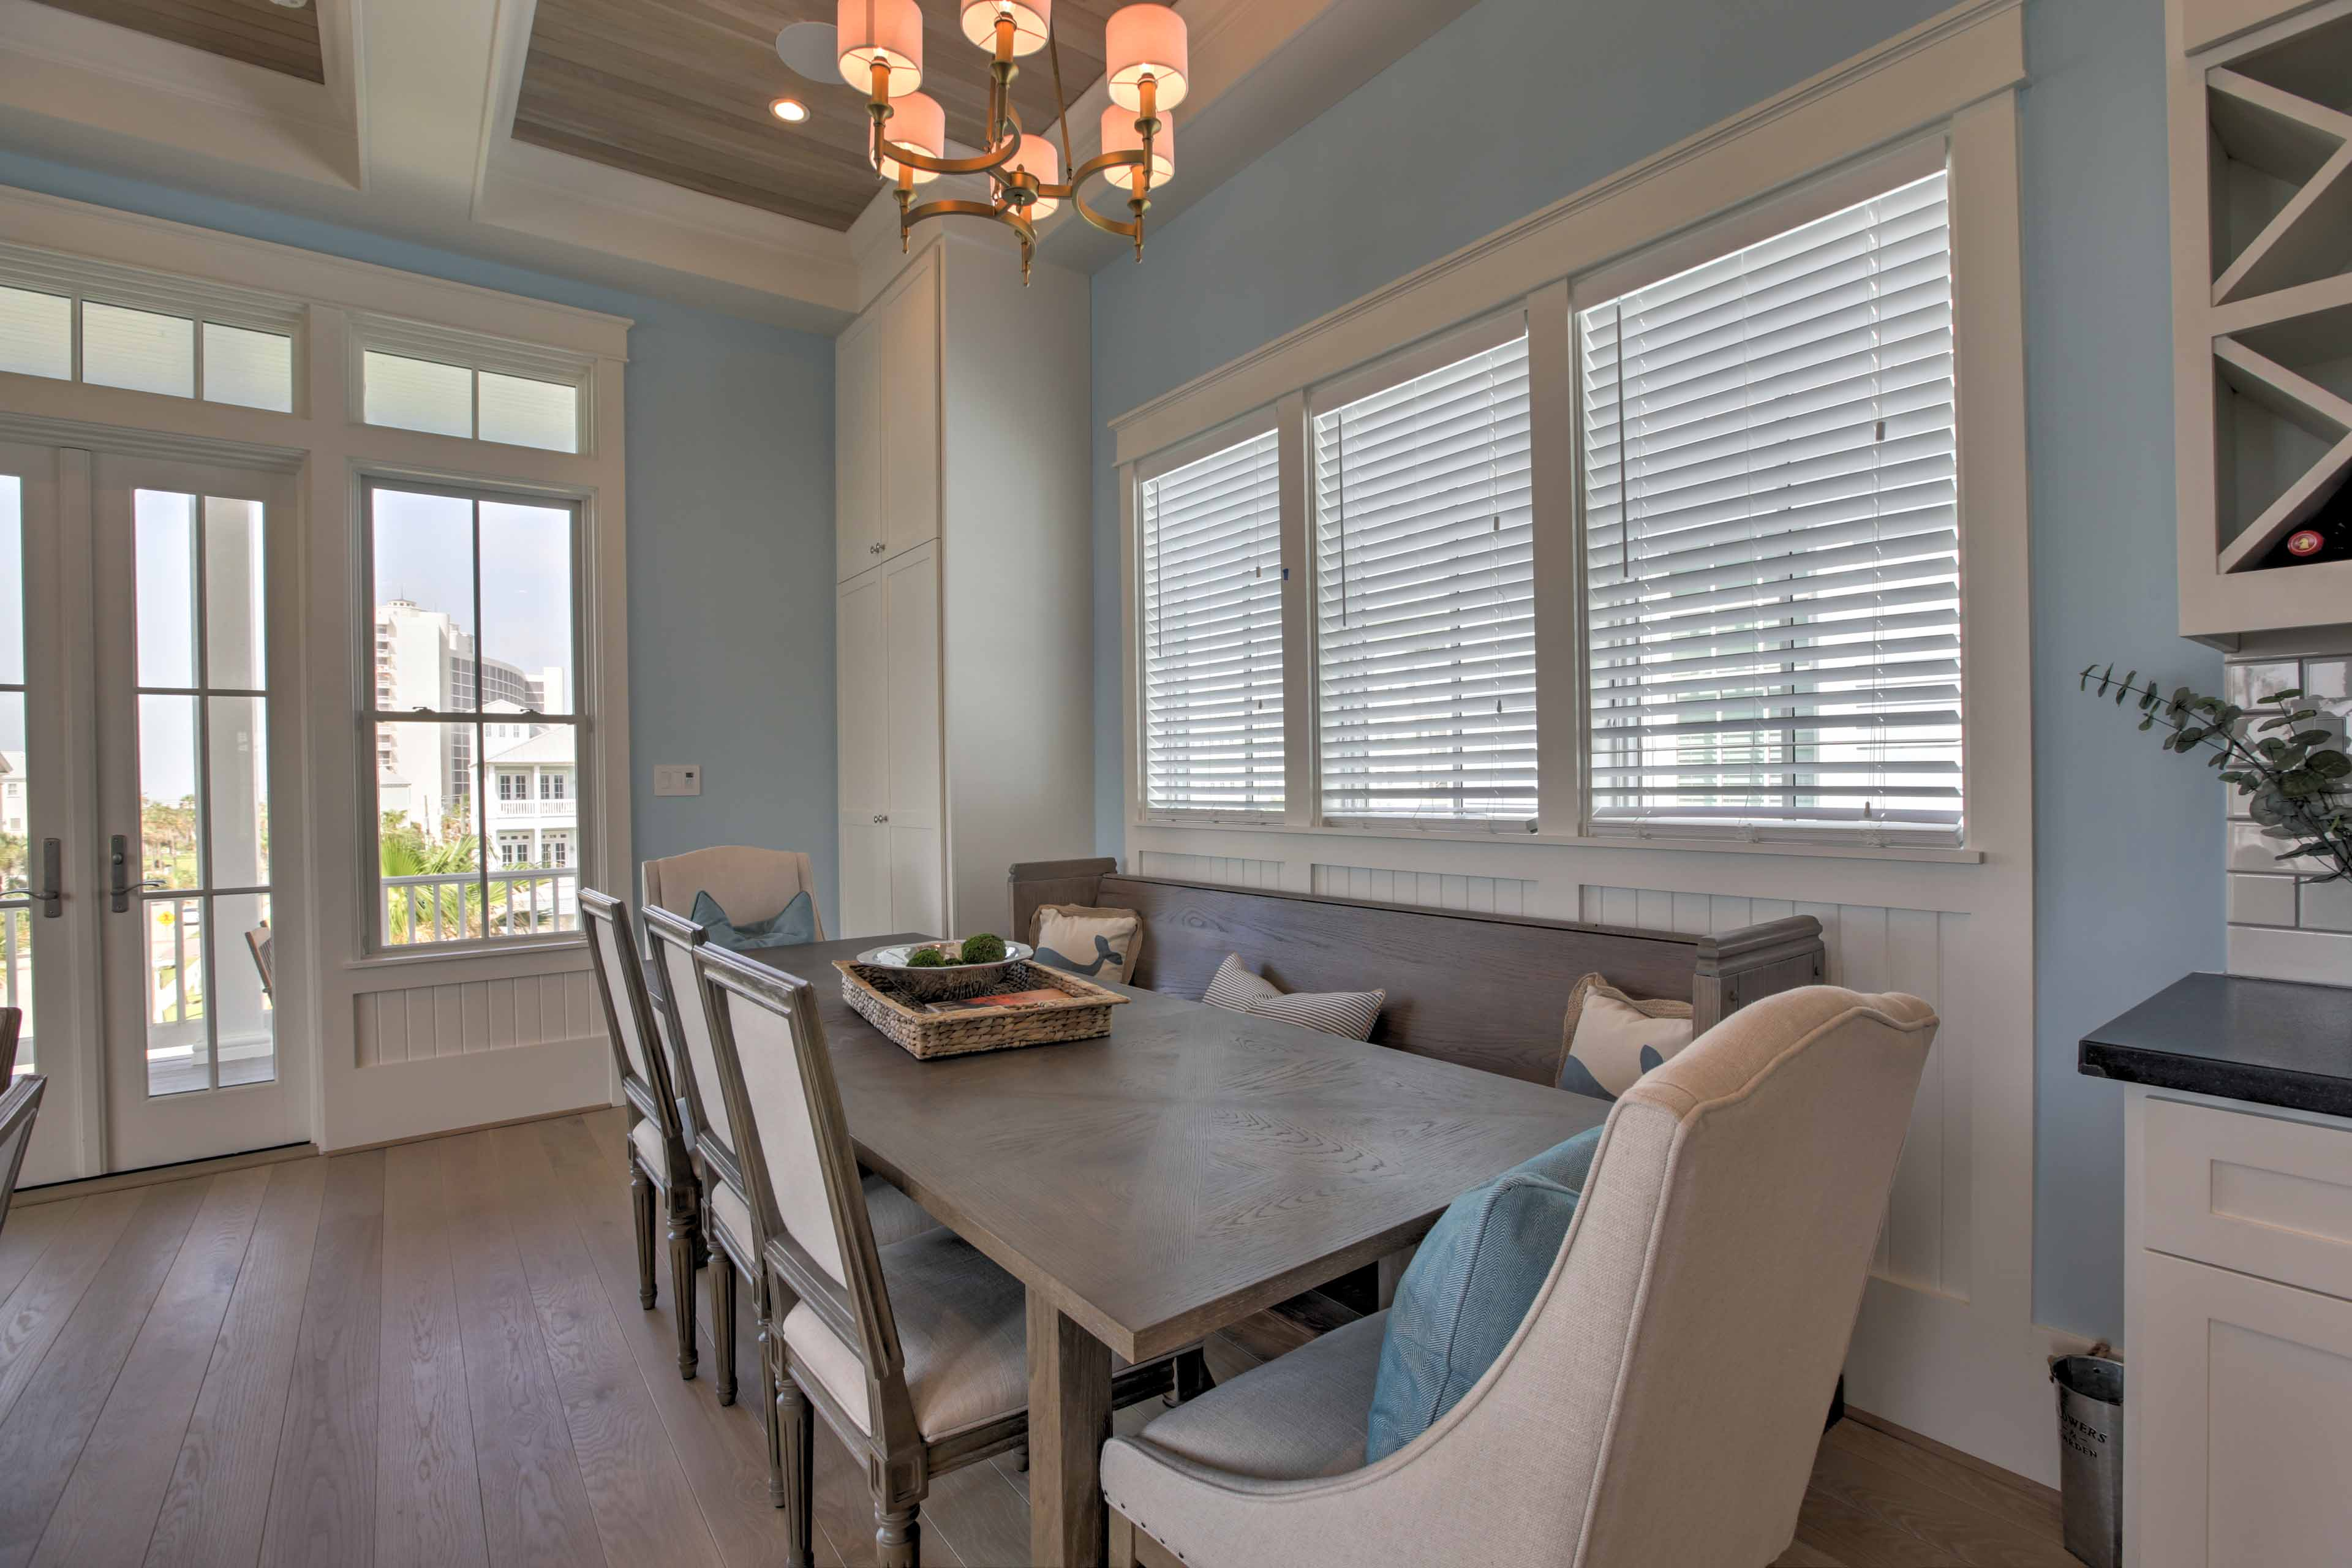 All of the guests in your travel group can dine and play board games together at the dining table.